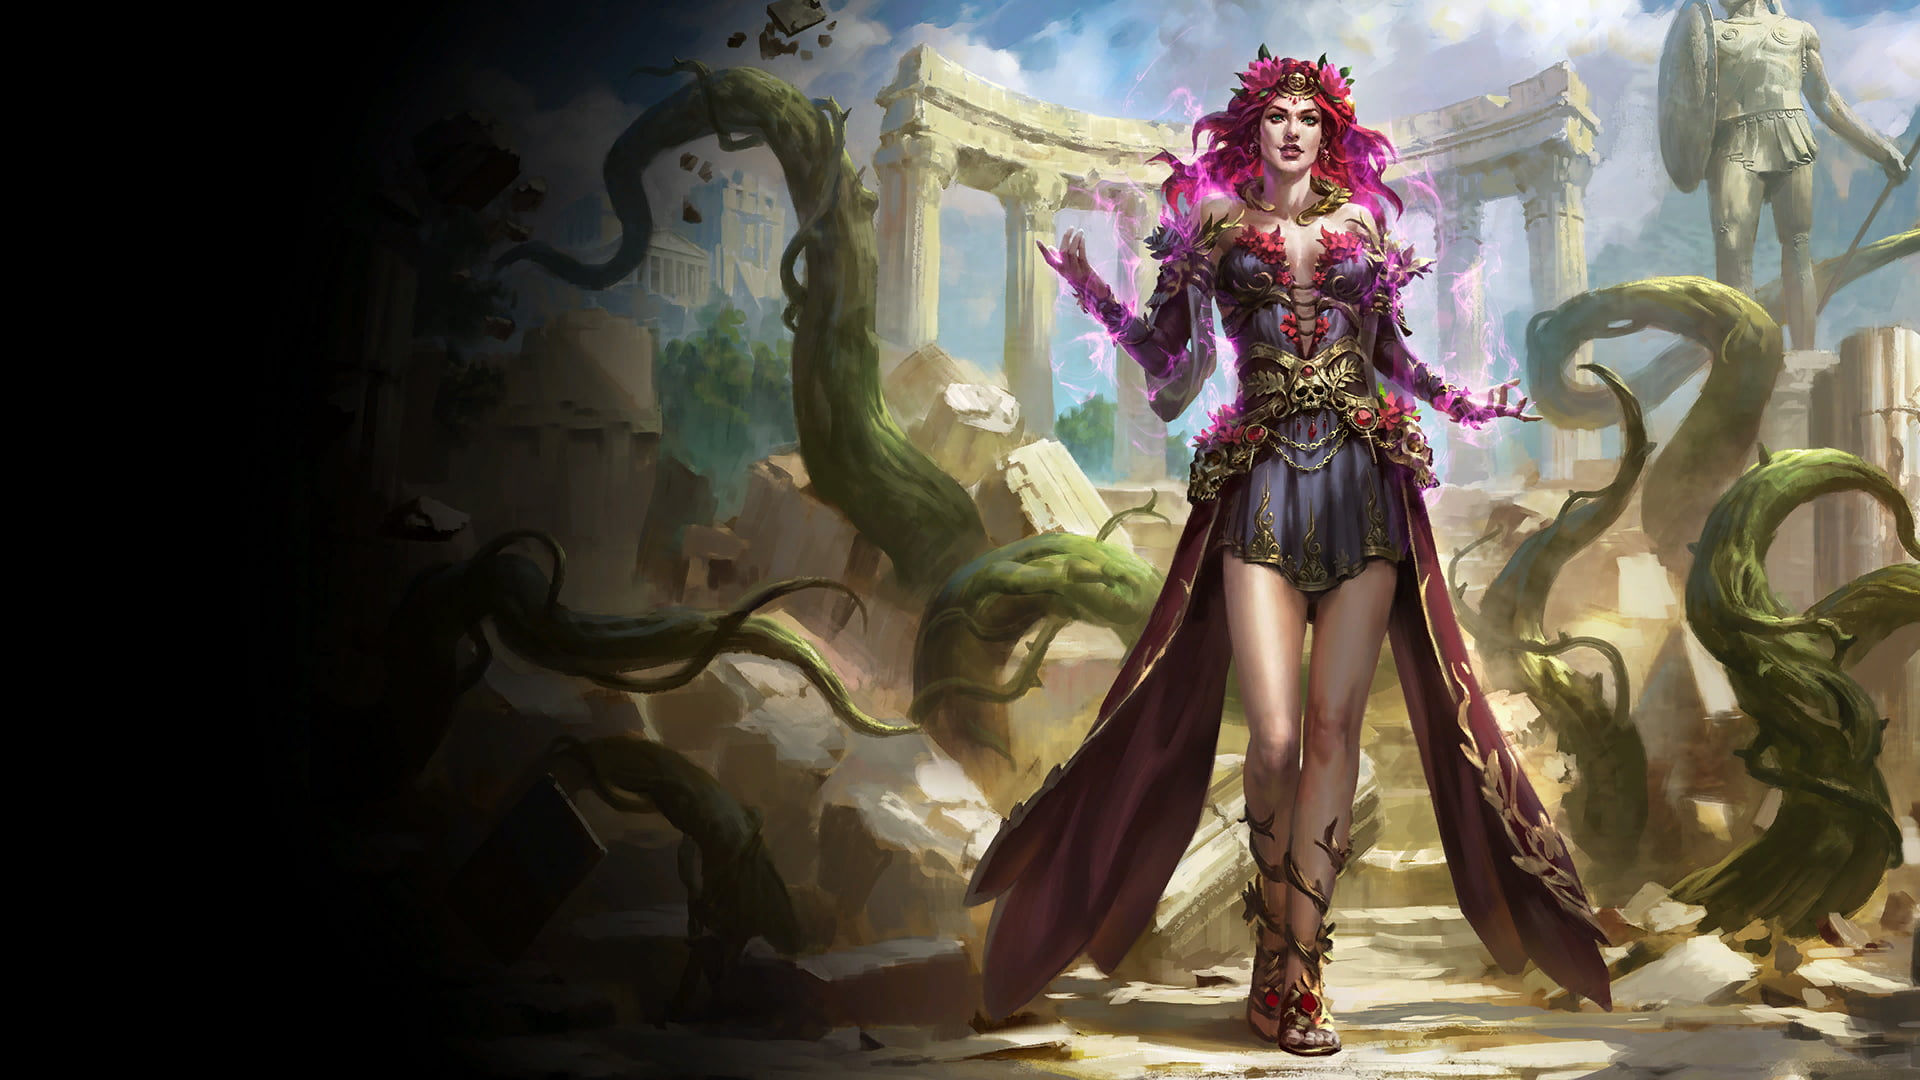 The deadliest of gardeners, Persephone waters her plants with YOU!